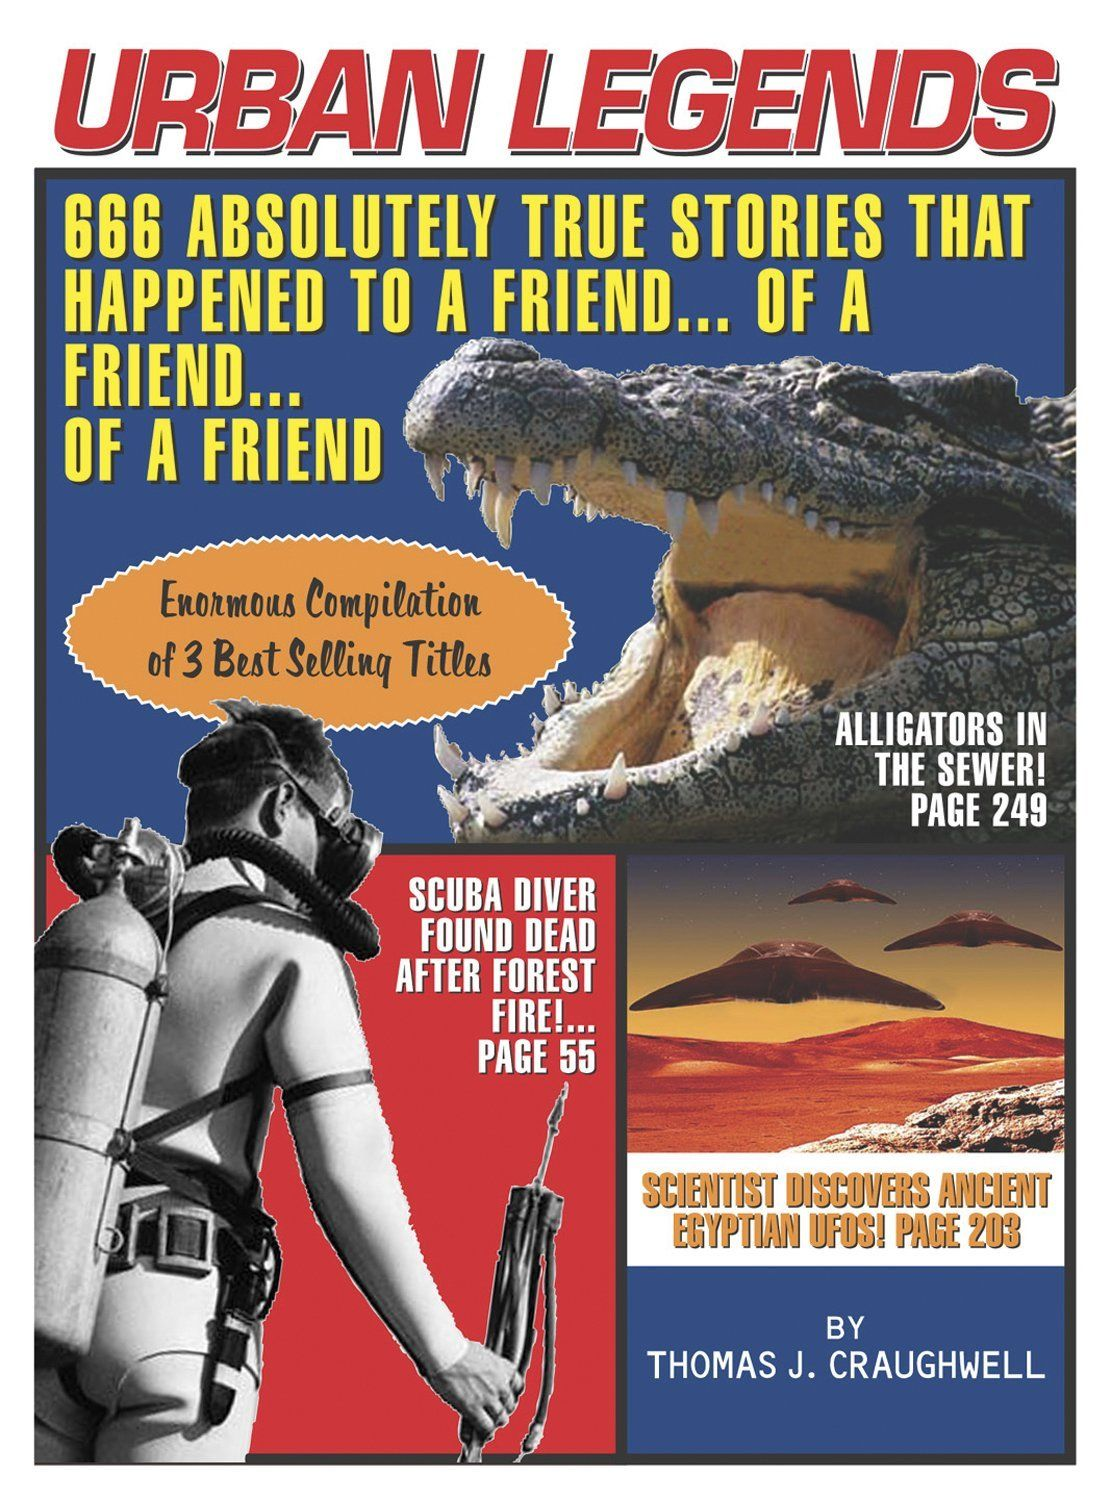 Urban Legends 666 Absolutely True Stories That Happened to a Friend of a Friend of a Friend ($9.39)